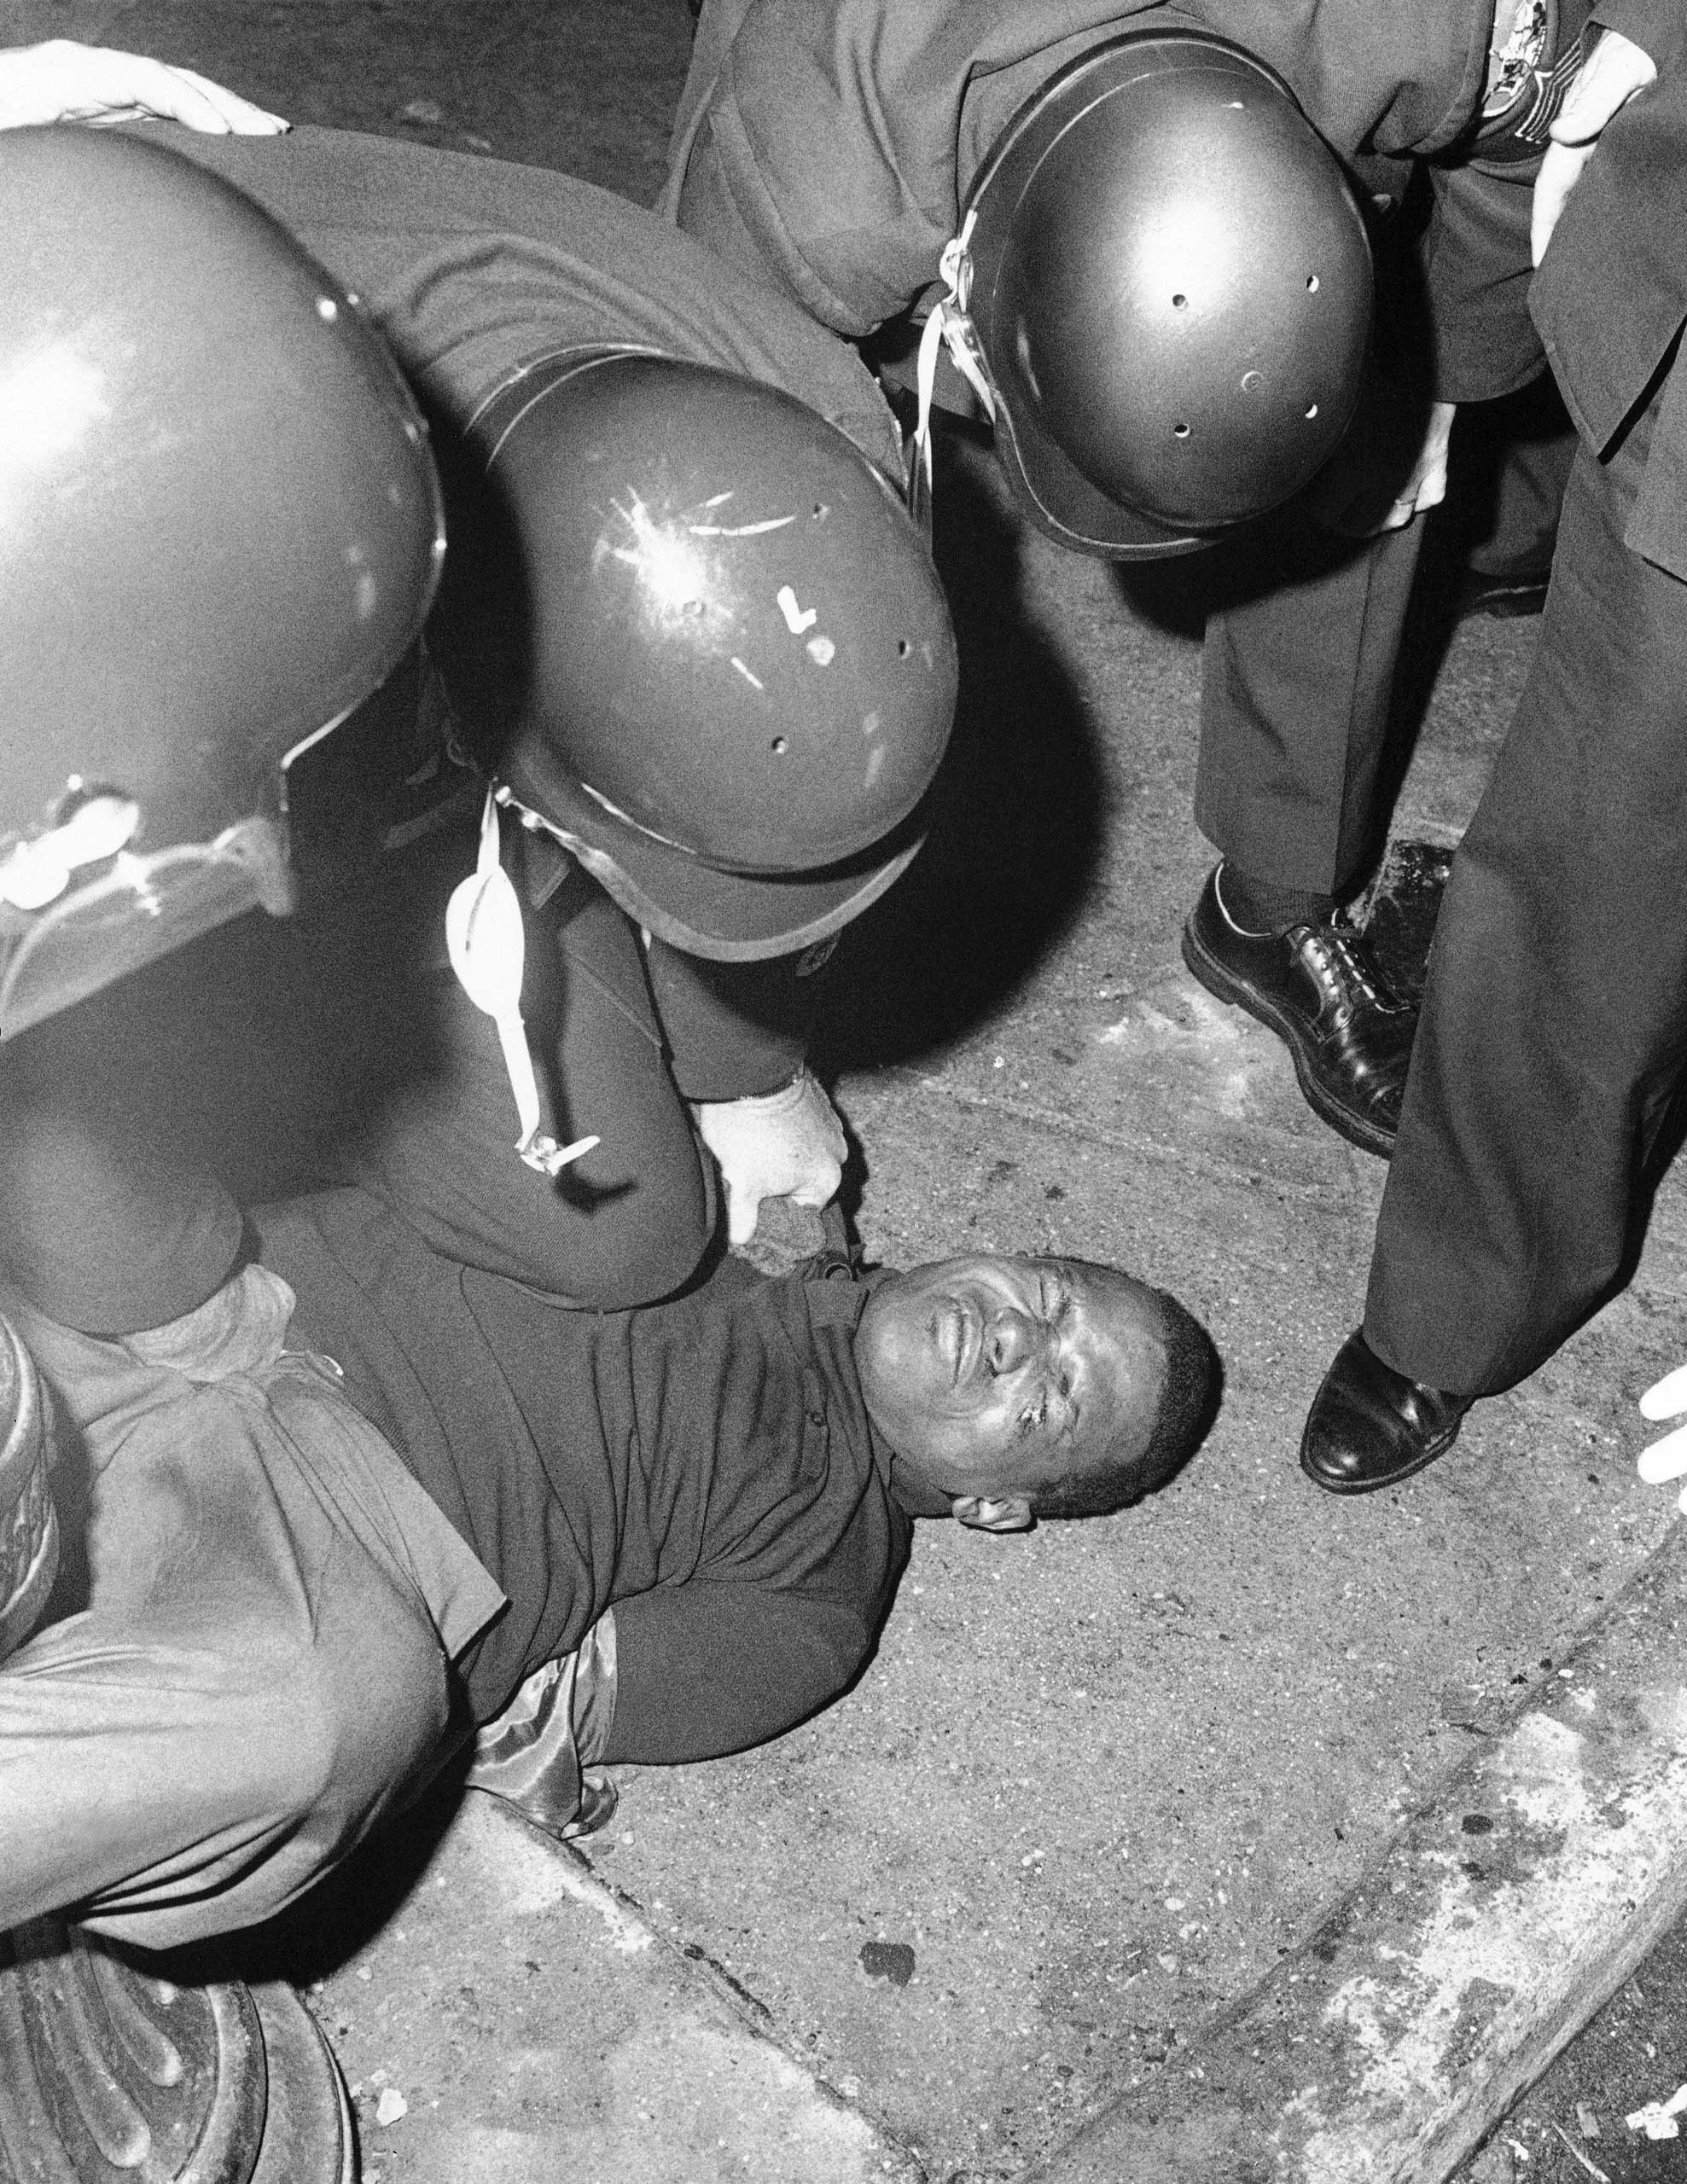 Baltimore City police pin down a curfew breaker in Baltimore on April 9, 1968.